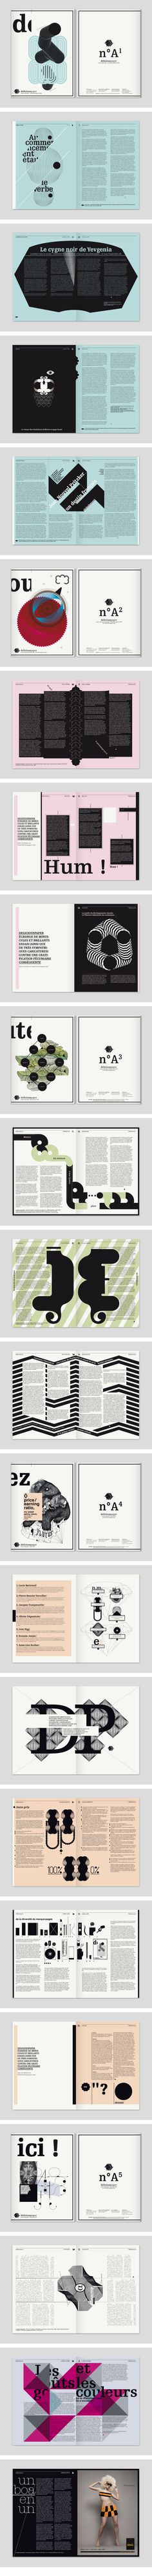 Design Studio: My name is Wendy Repetition squared - each piece repeats a simple shape, using the same illustrative style to allow for cohesion. While background colors can vary, the shapes and accent items are all in black.